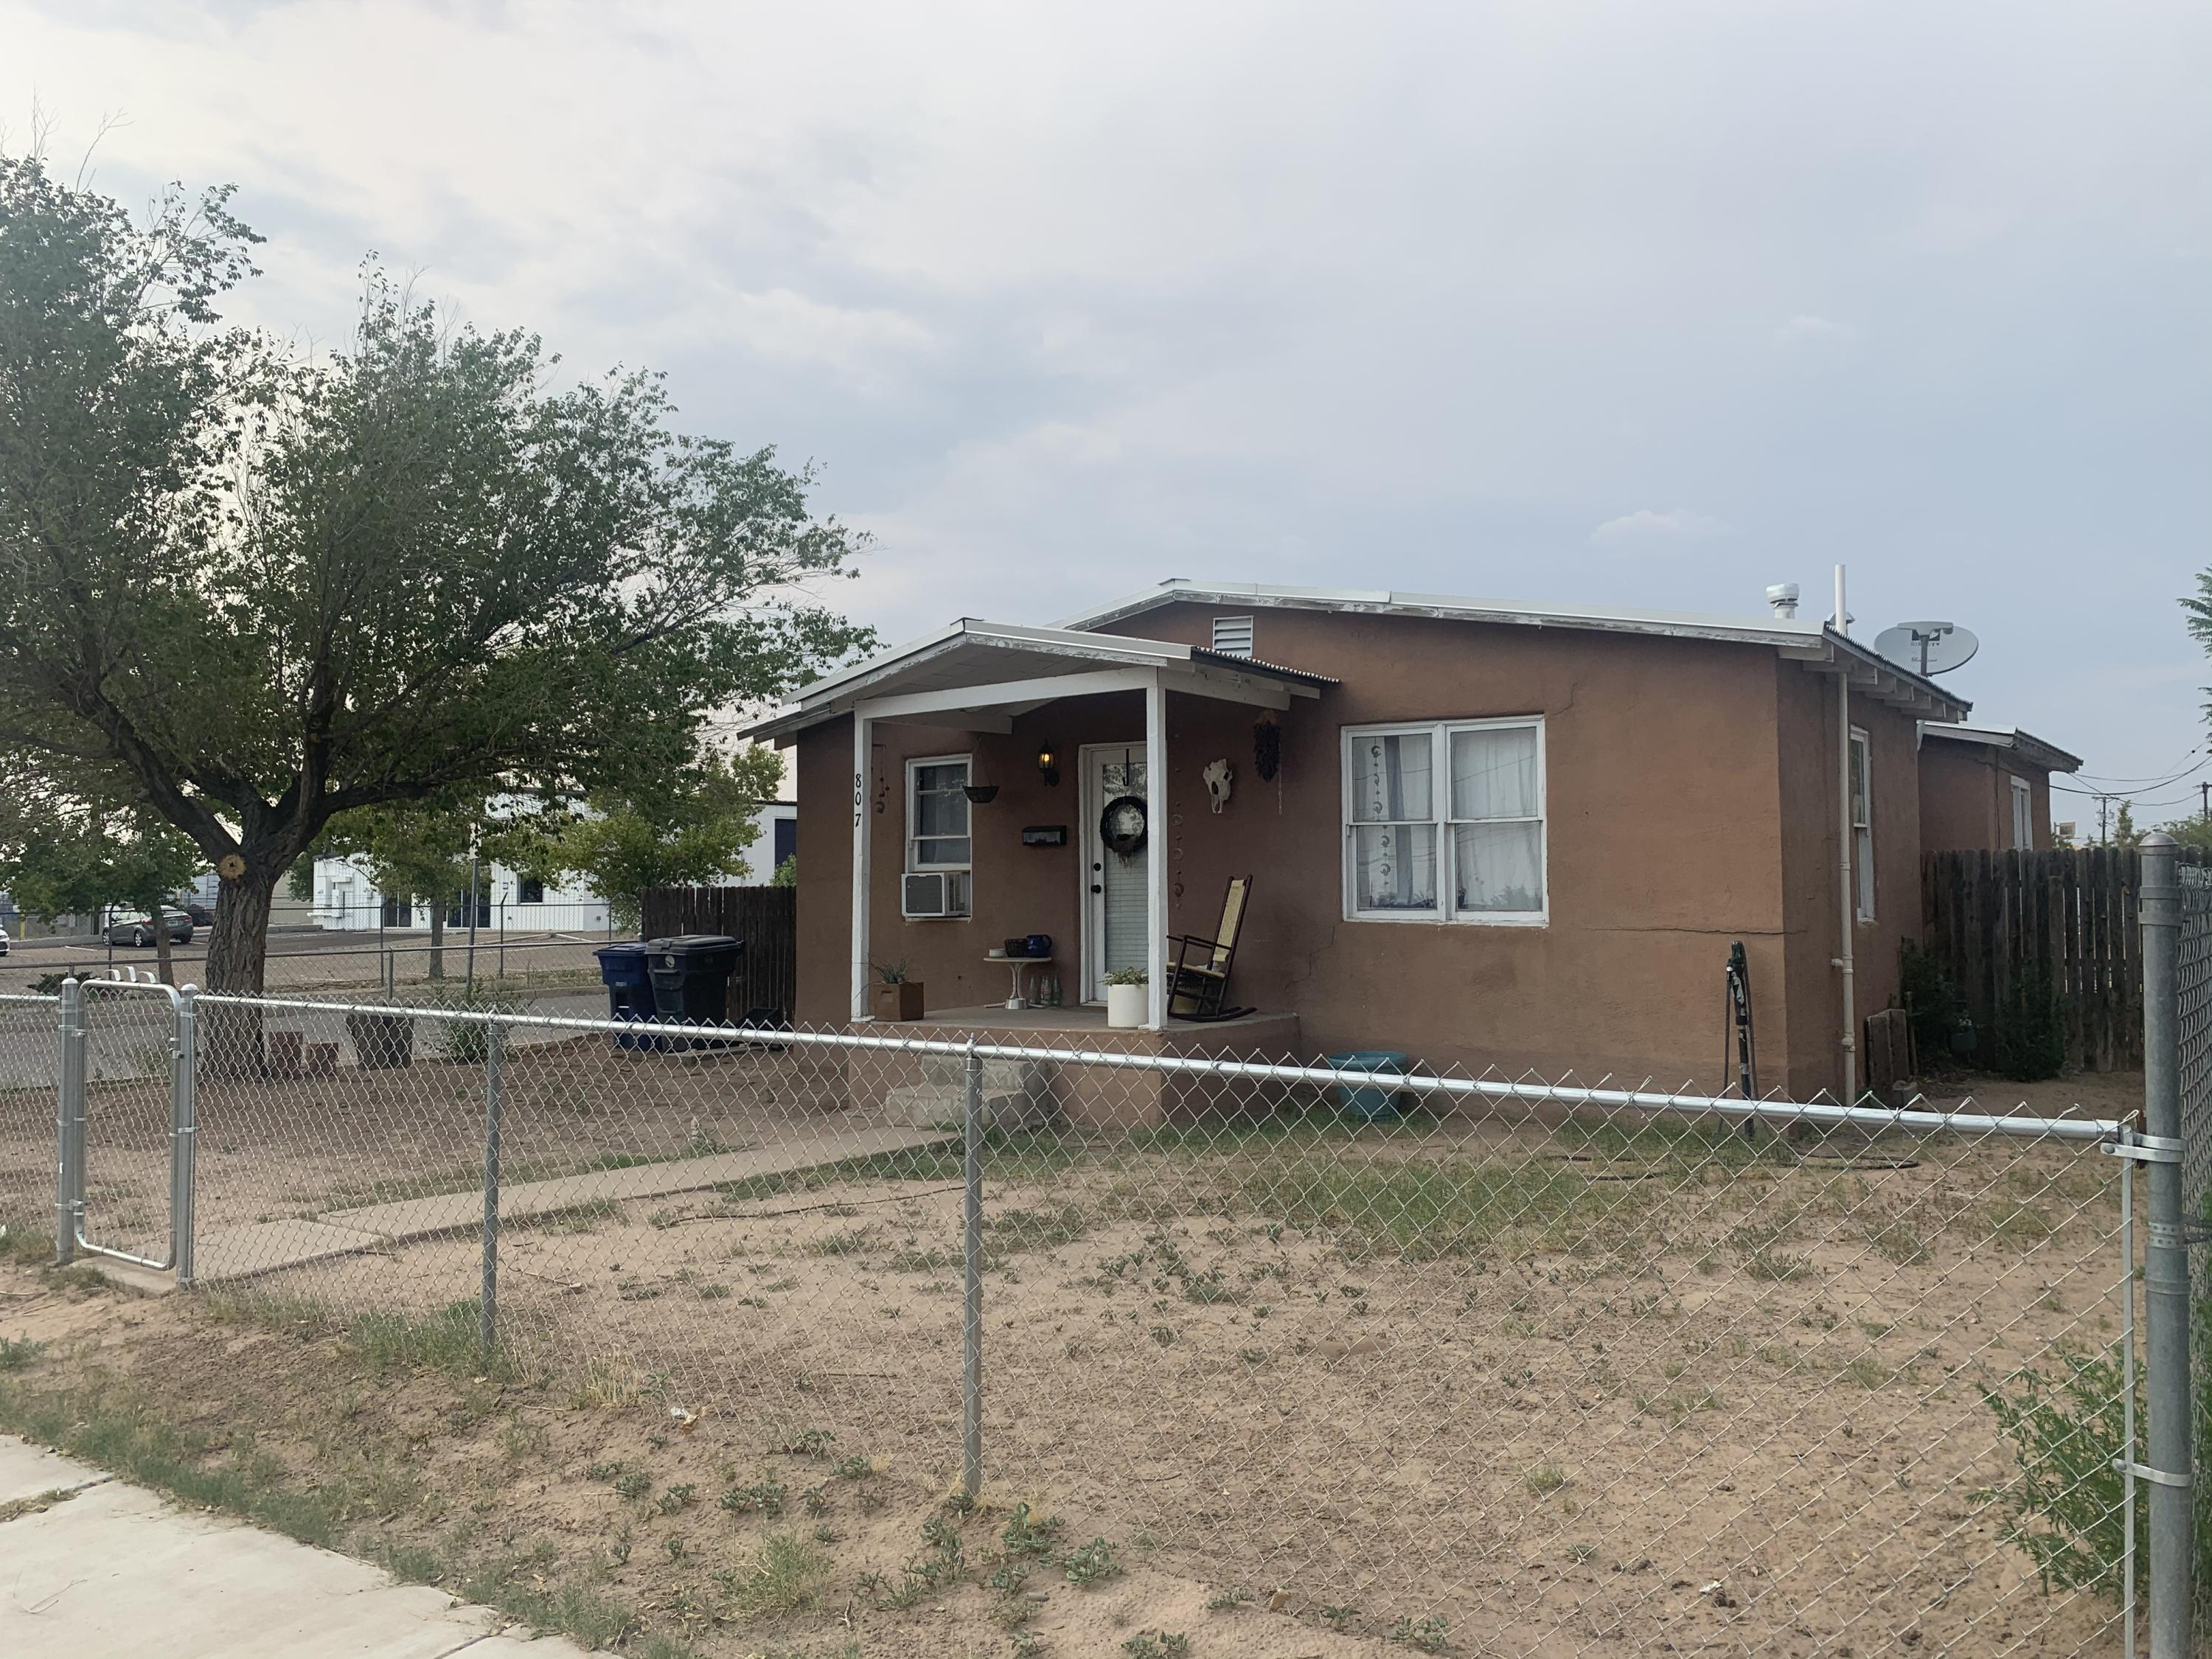 Great starter home or rental unit in the Wells Park/Sawmill Downtown area. Lots of room for improvements in this upcoming area. There is a package deal including MLS #975031 and #975184 for investors and developers that has huge potential. Call your realtor or the listing agent for details.